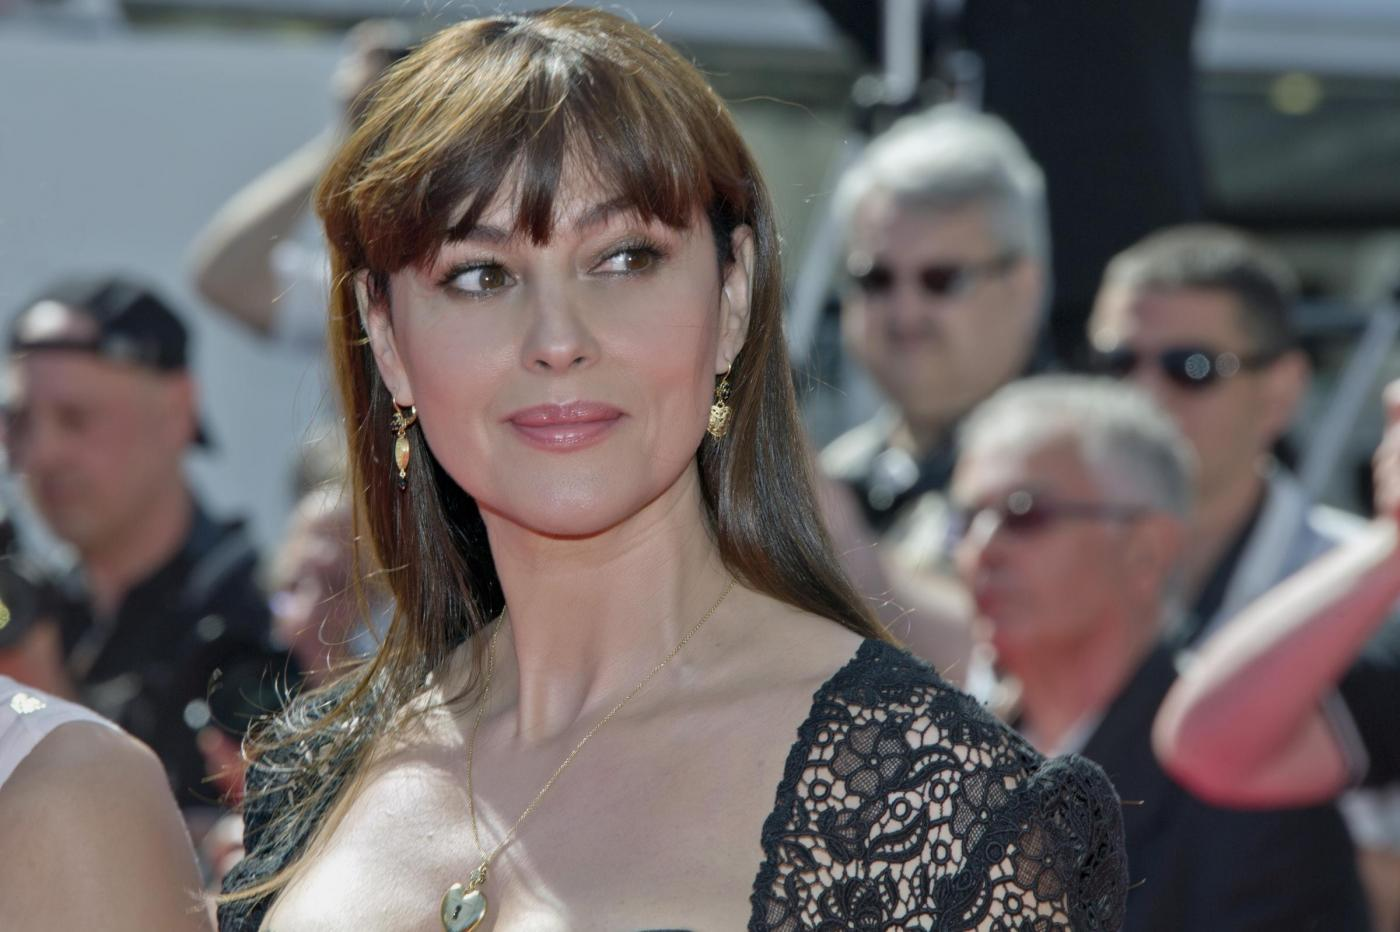 Le Meraviglie: red carpet dell'unico film italiano in concorso a Cannes 2014